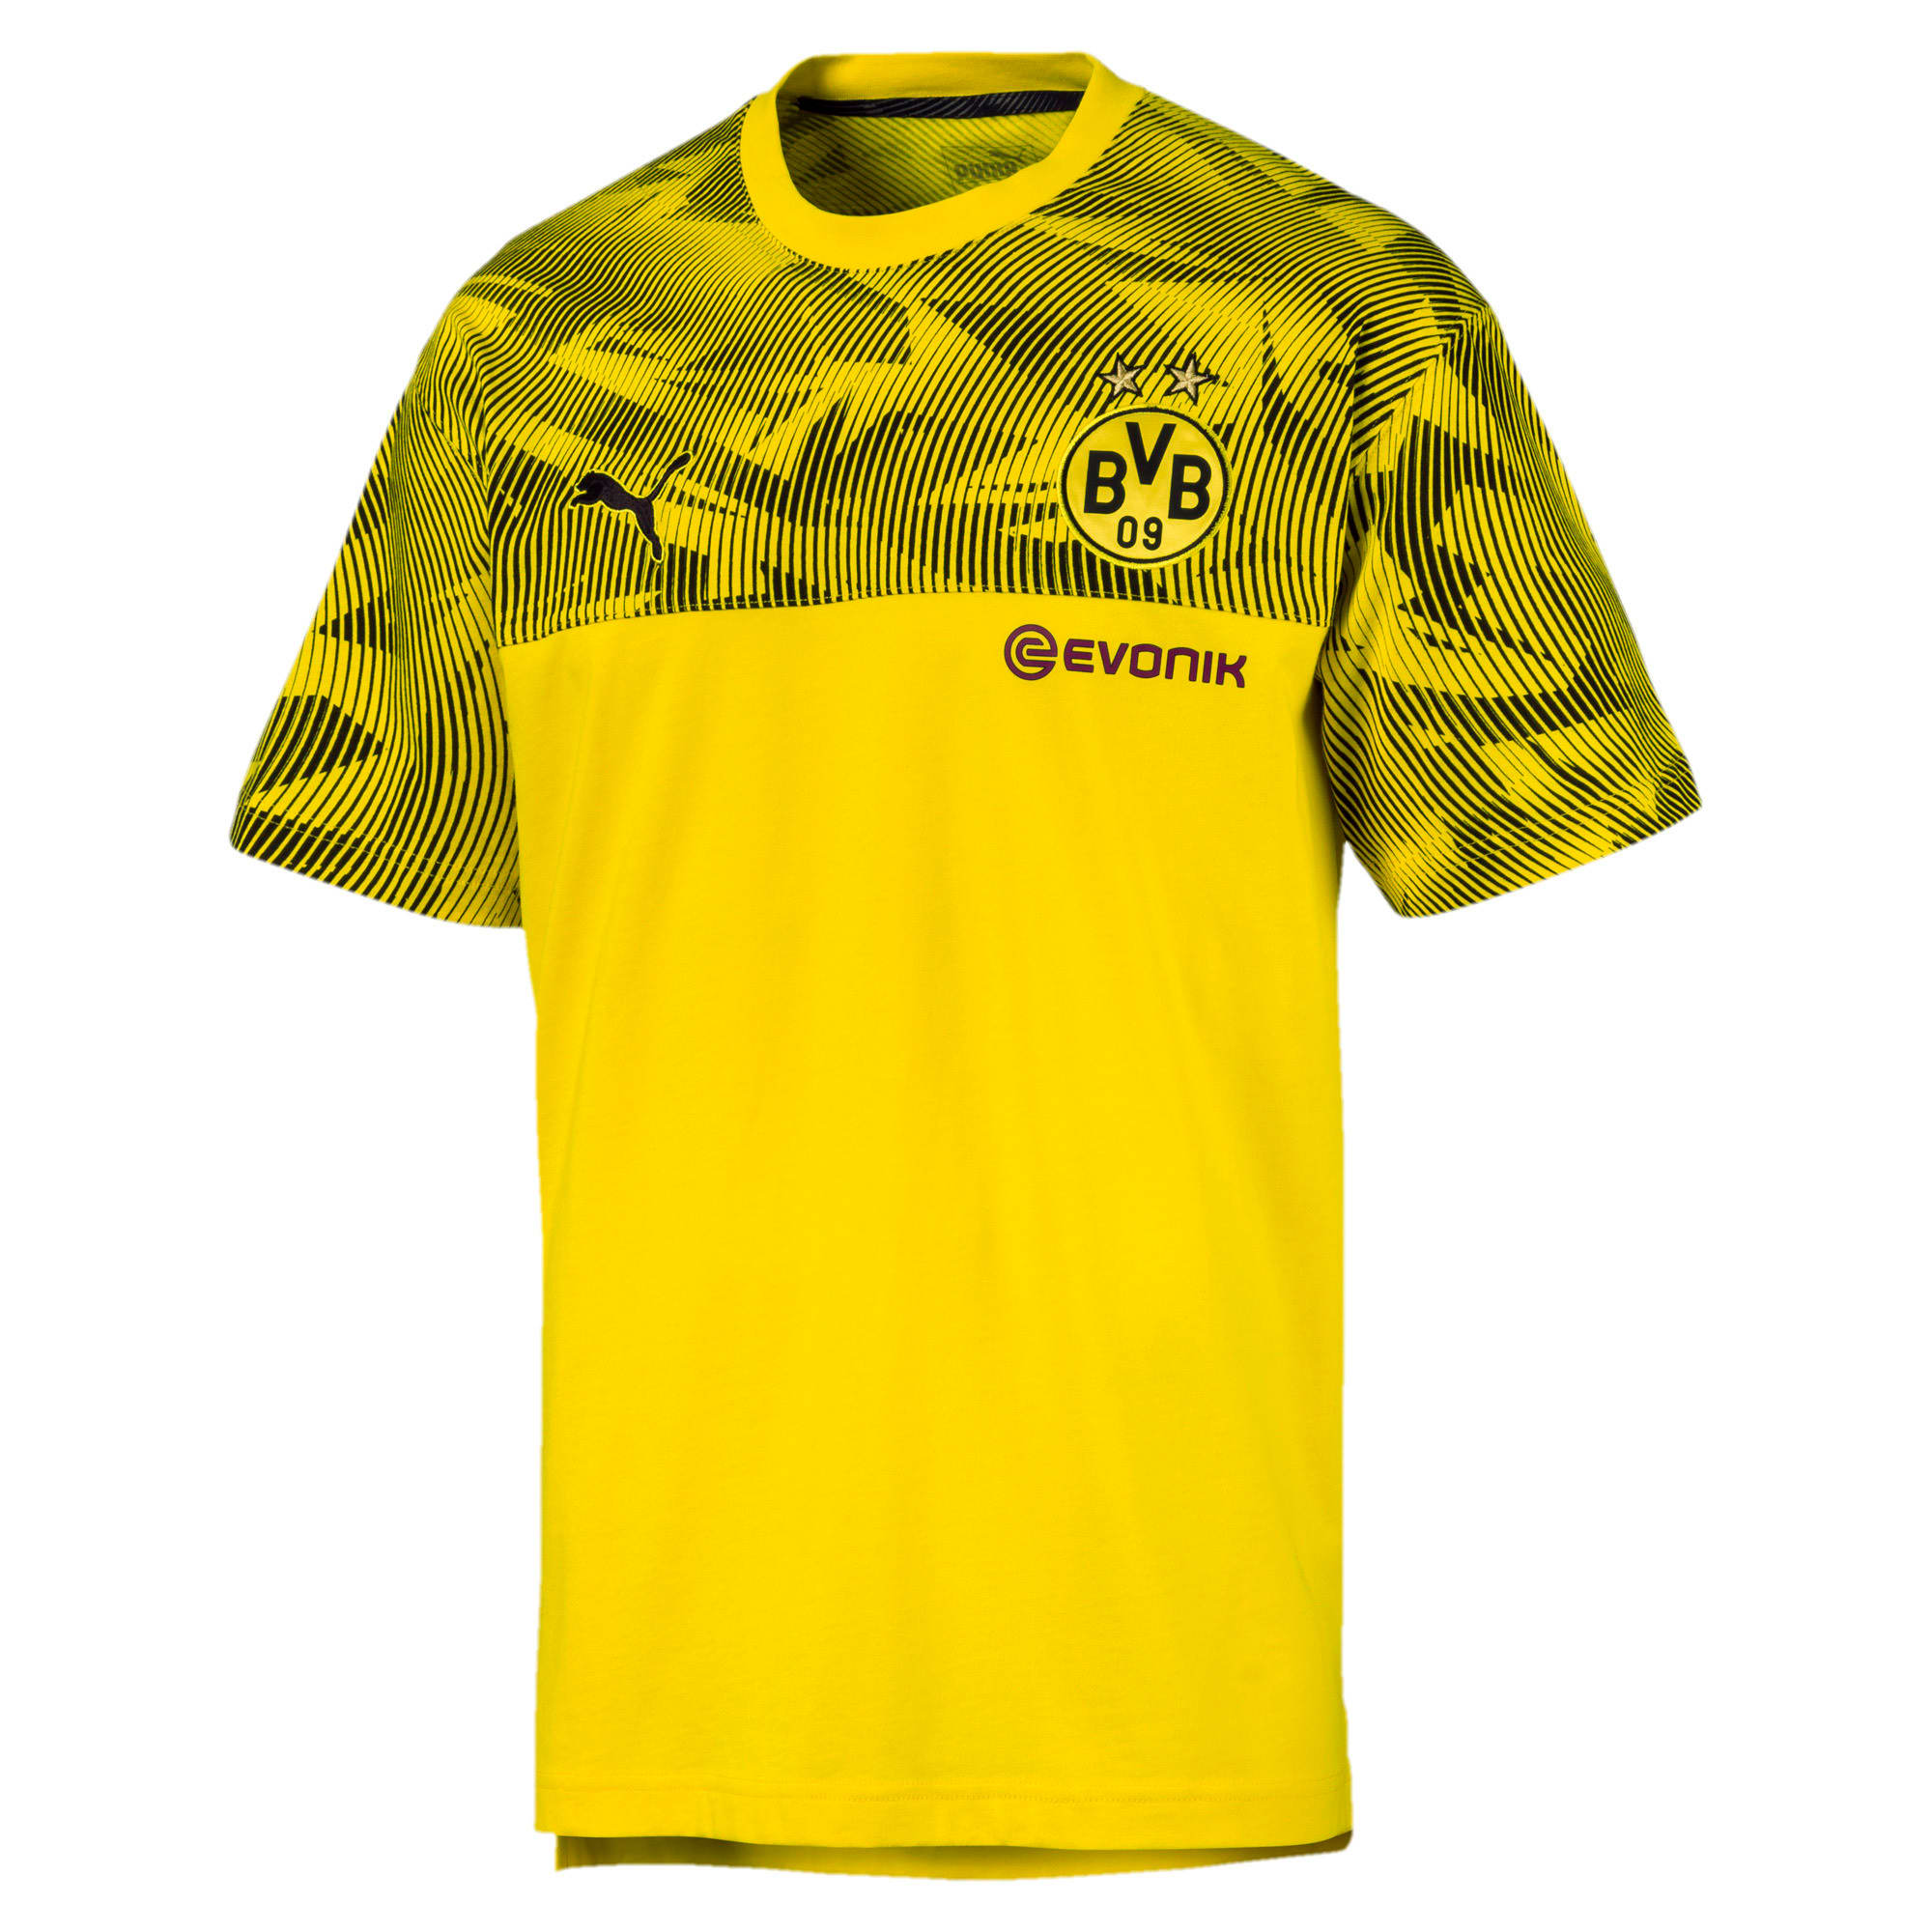 Thumbnail 4 of BVB Casuals Men's Tee, Cyber Yellow-Puma Black, medium